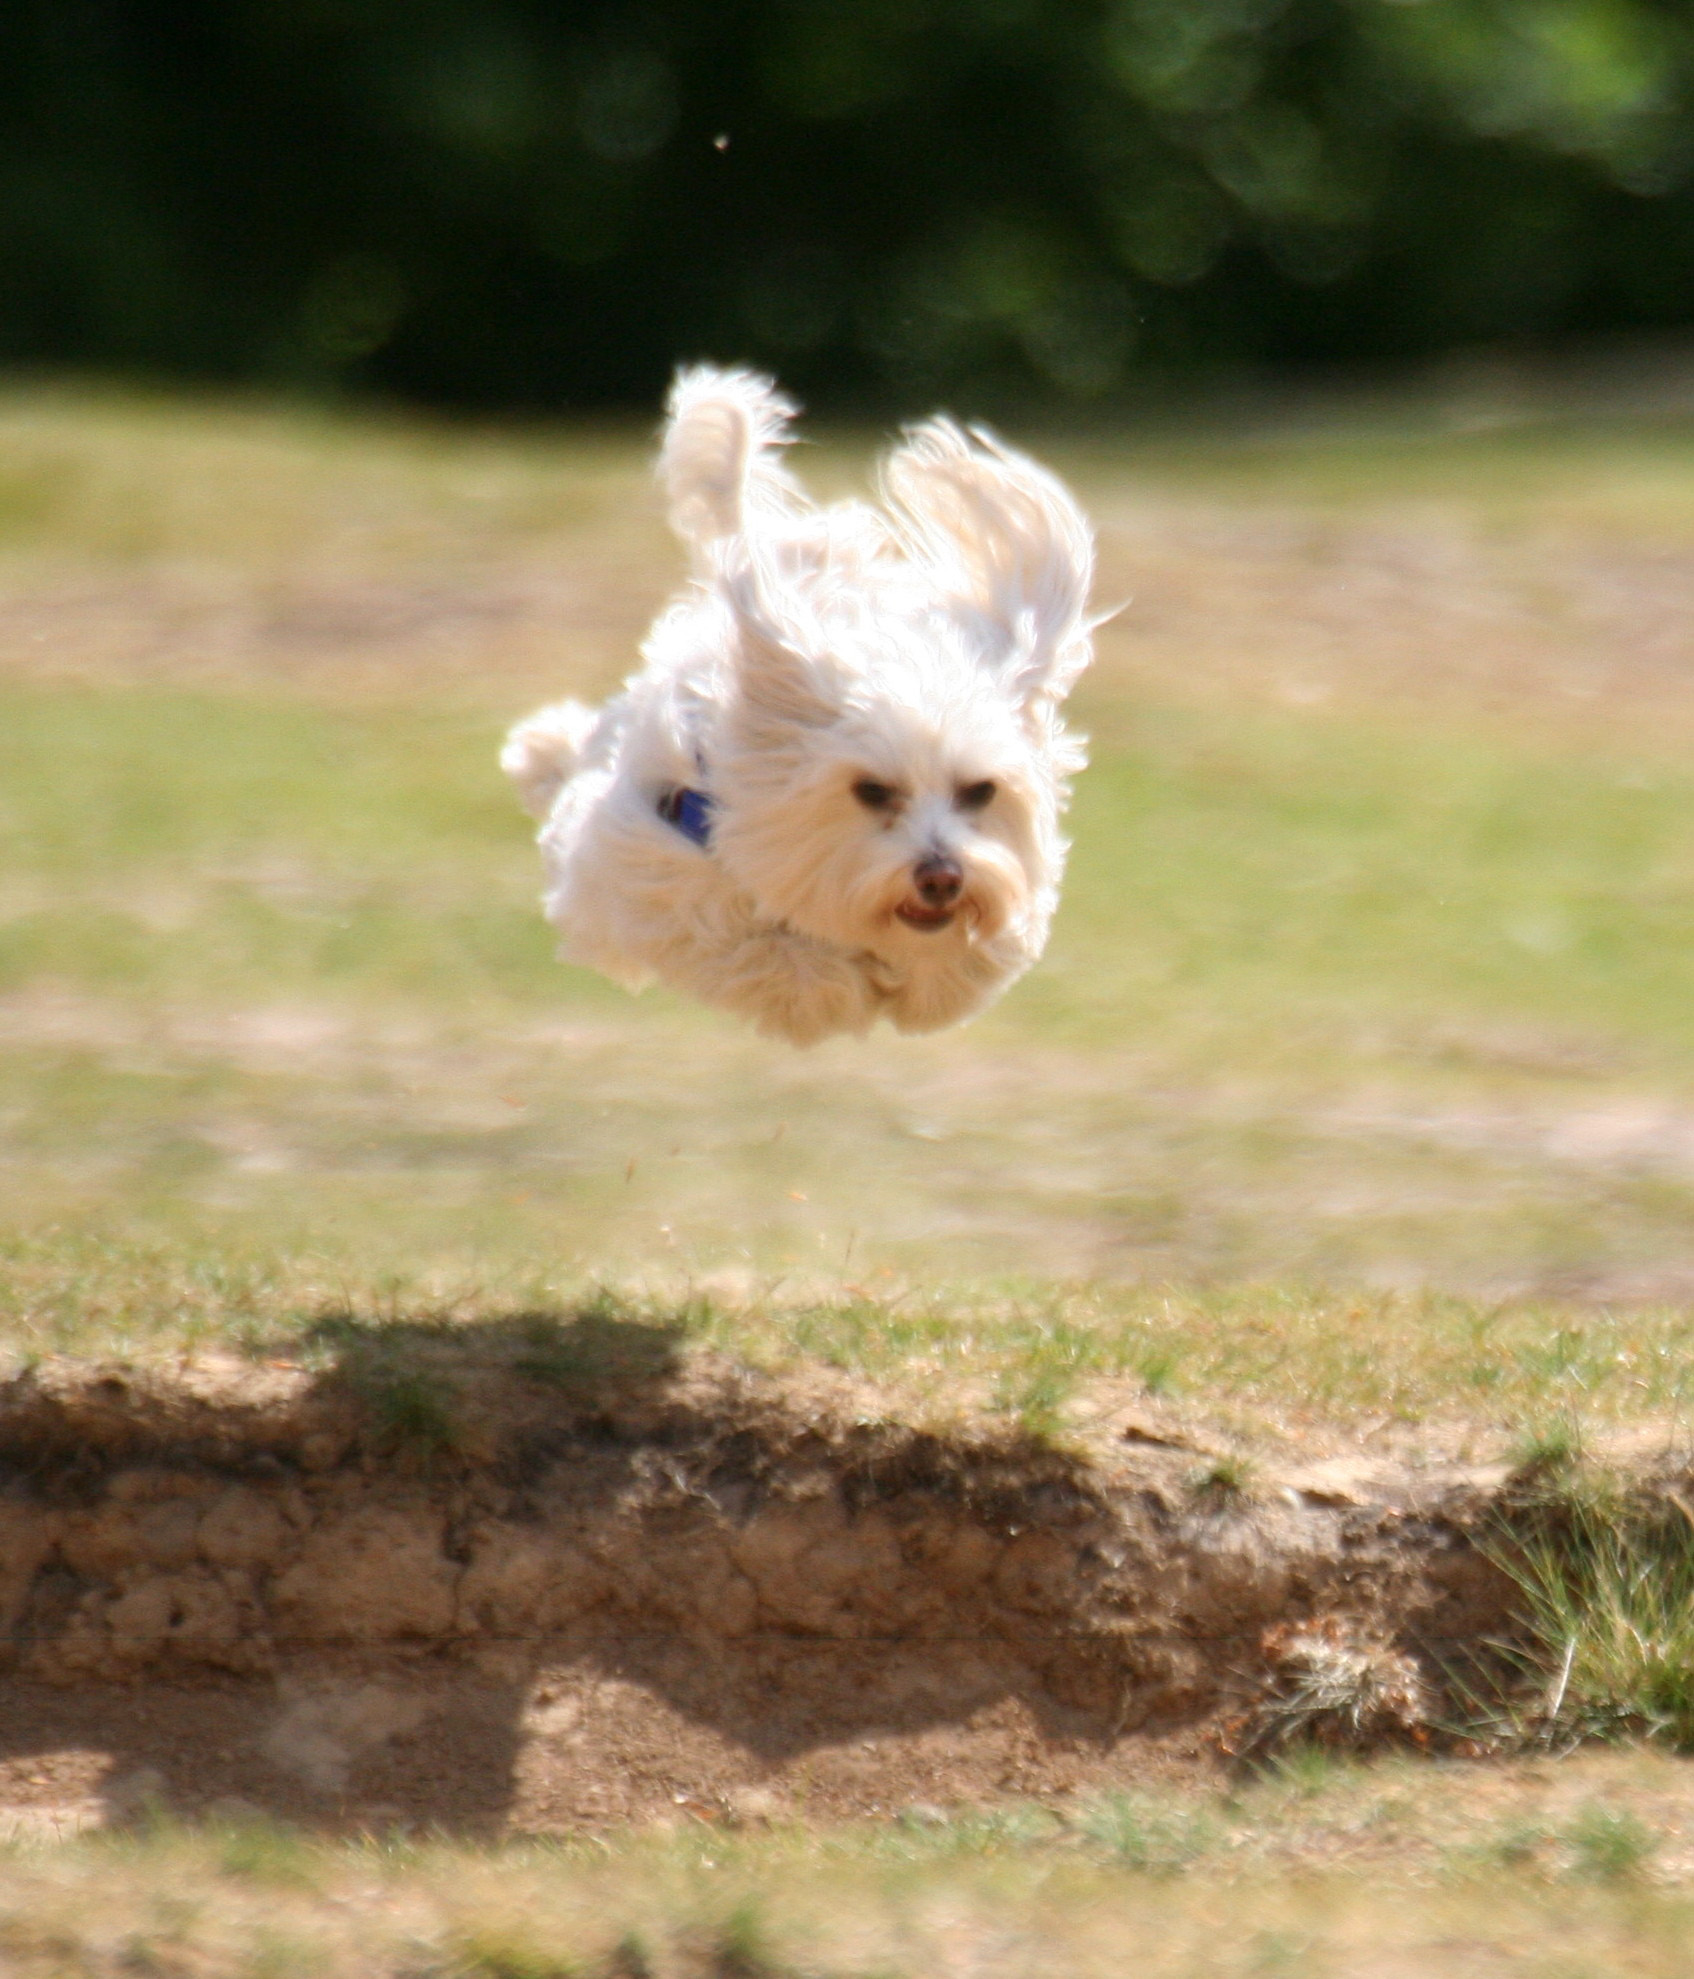 Small dog jumping up in the air image free stock photo for Best airline to fly dogs